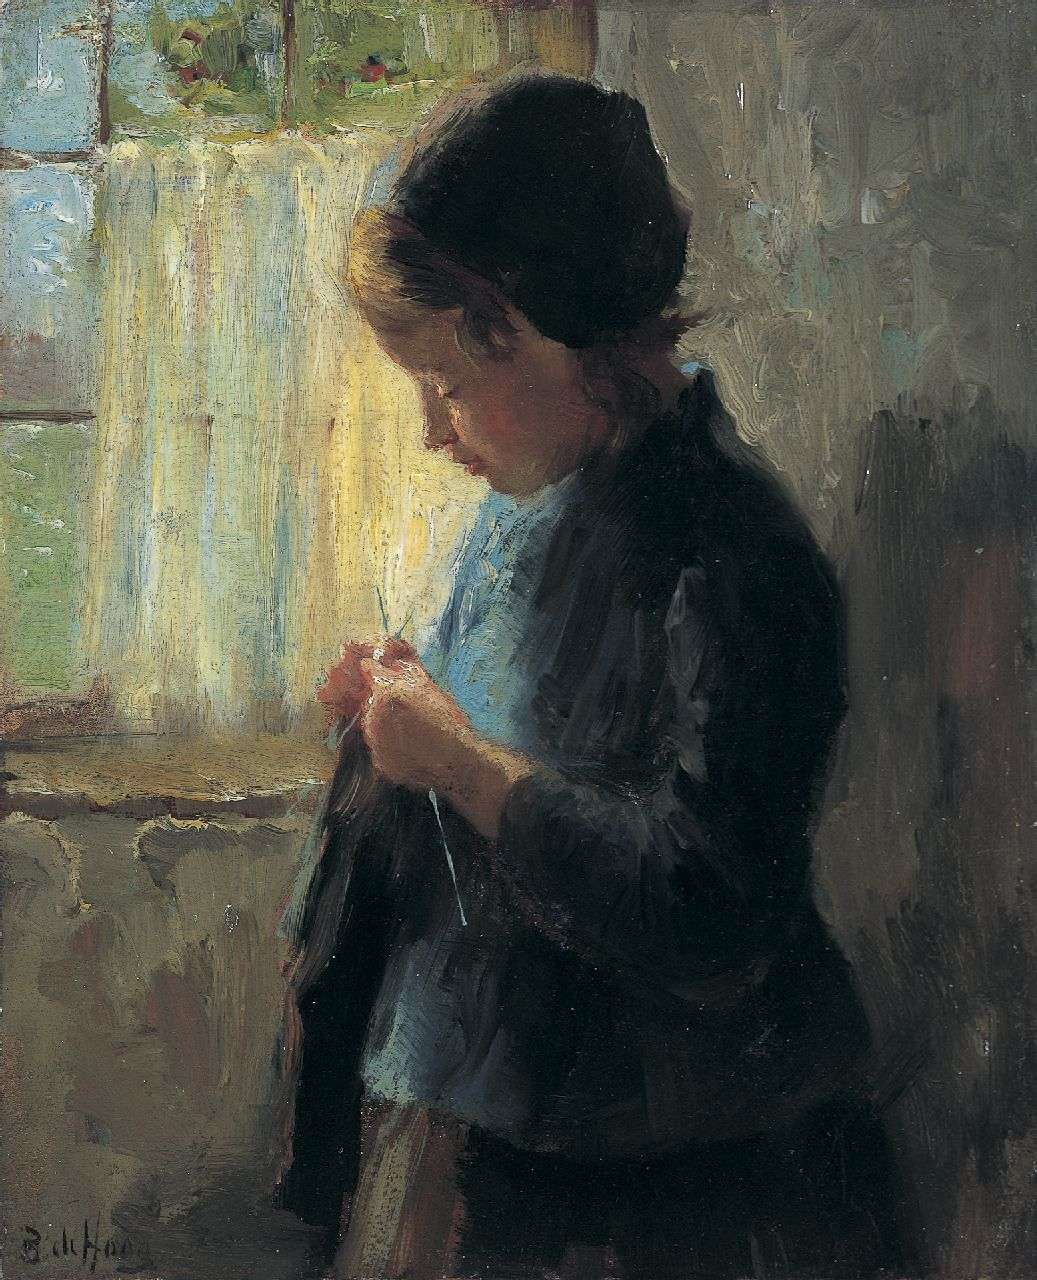 Hoog J.B. de | Johan 'Bernard' de Hoog, A girl knitting, oil on panel 16.7 x 13.7 cm, signed l.l.